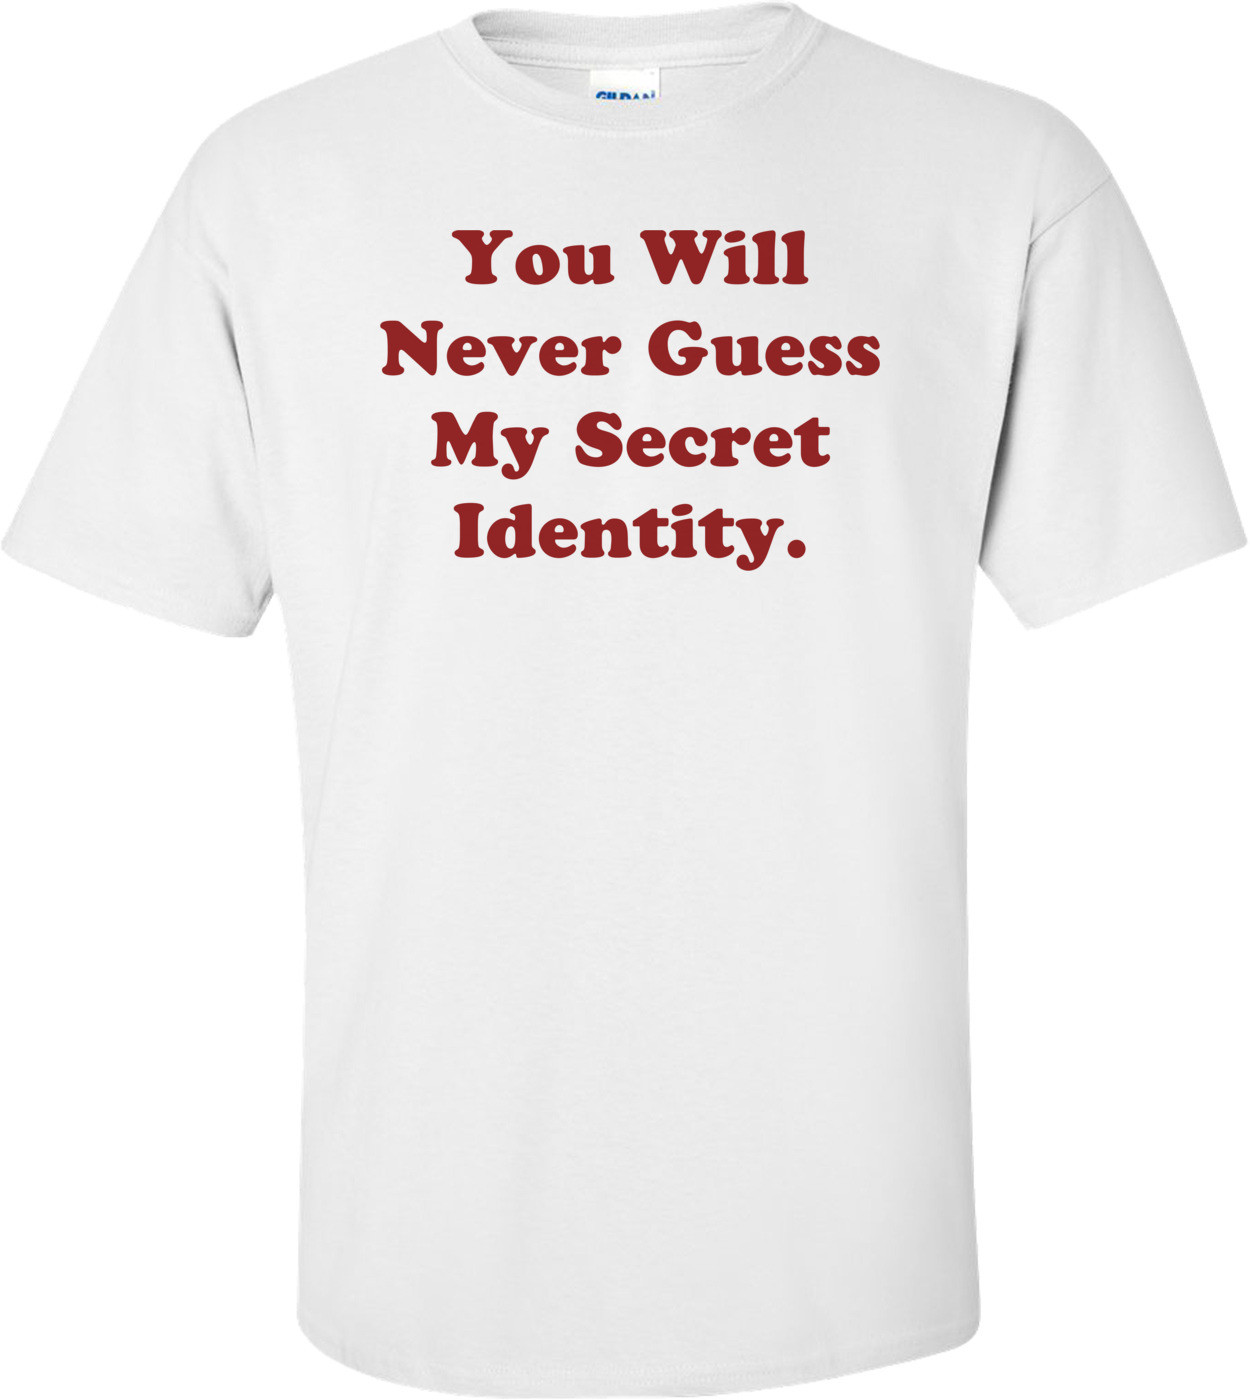 You Will Never Guess My Secret Identity. Shirt